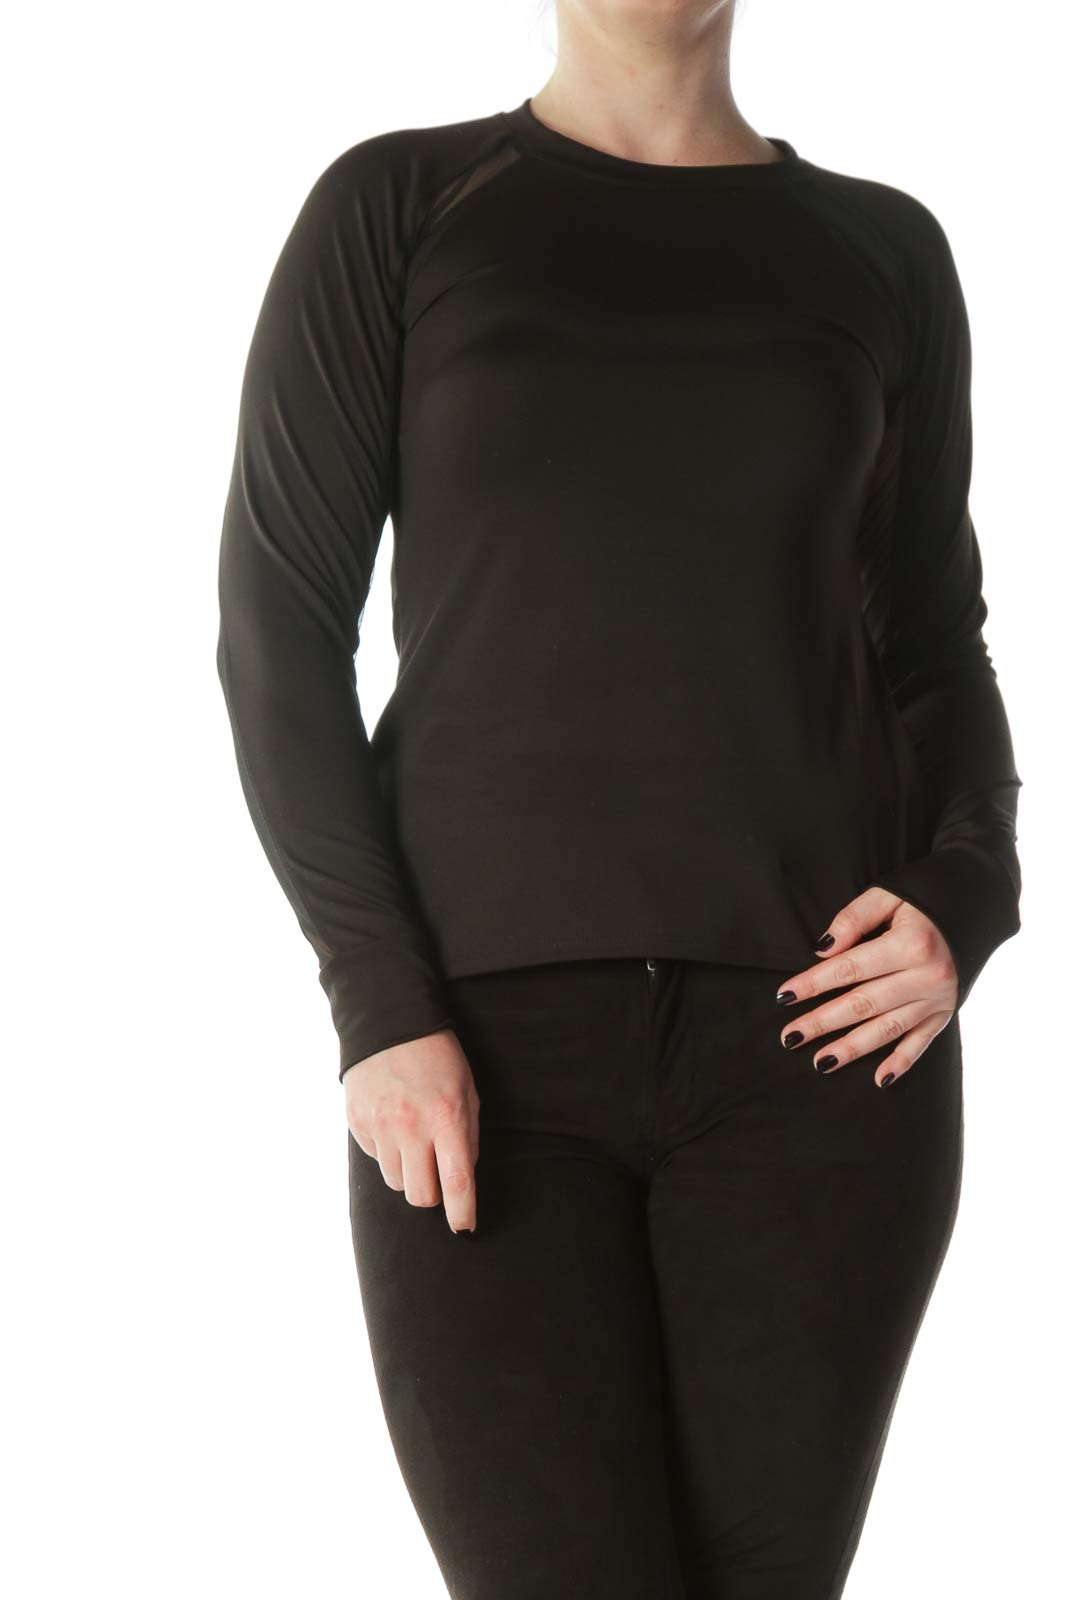 Black Mesh Arm Detail Long Sleeve Sports Top Front